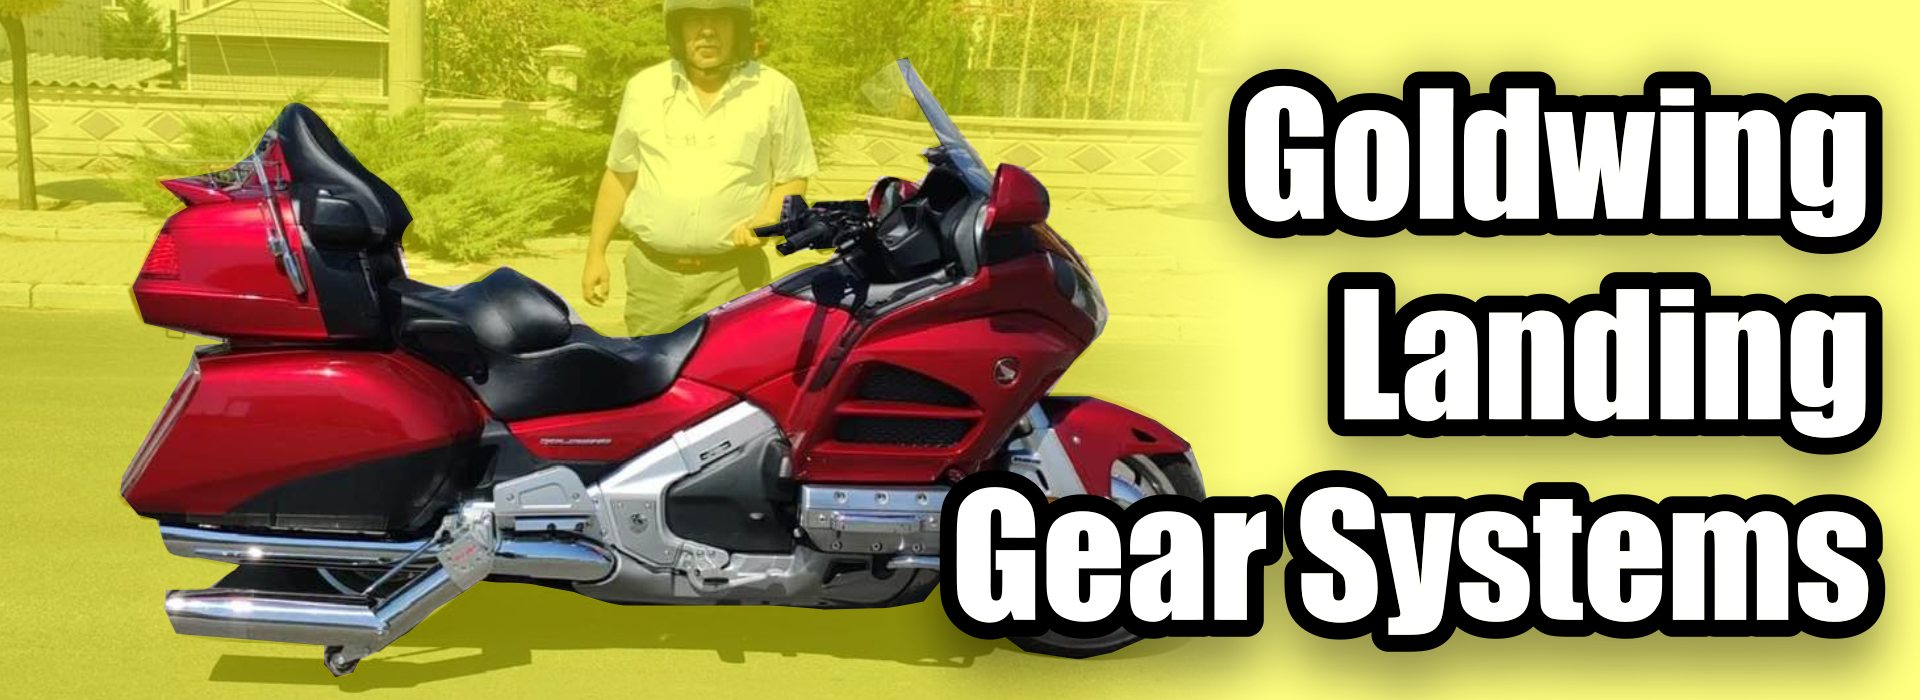 Goldwing Landing Gear Systems